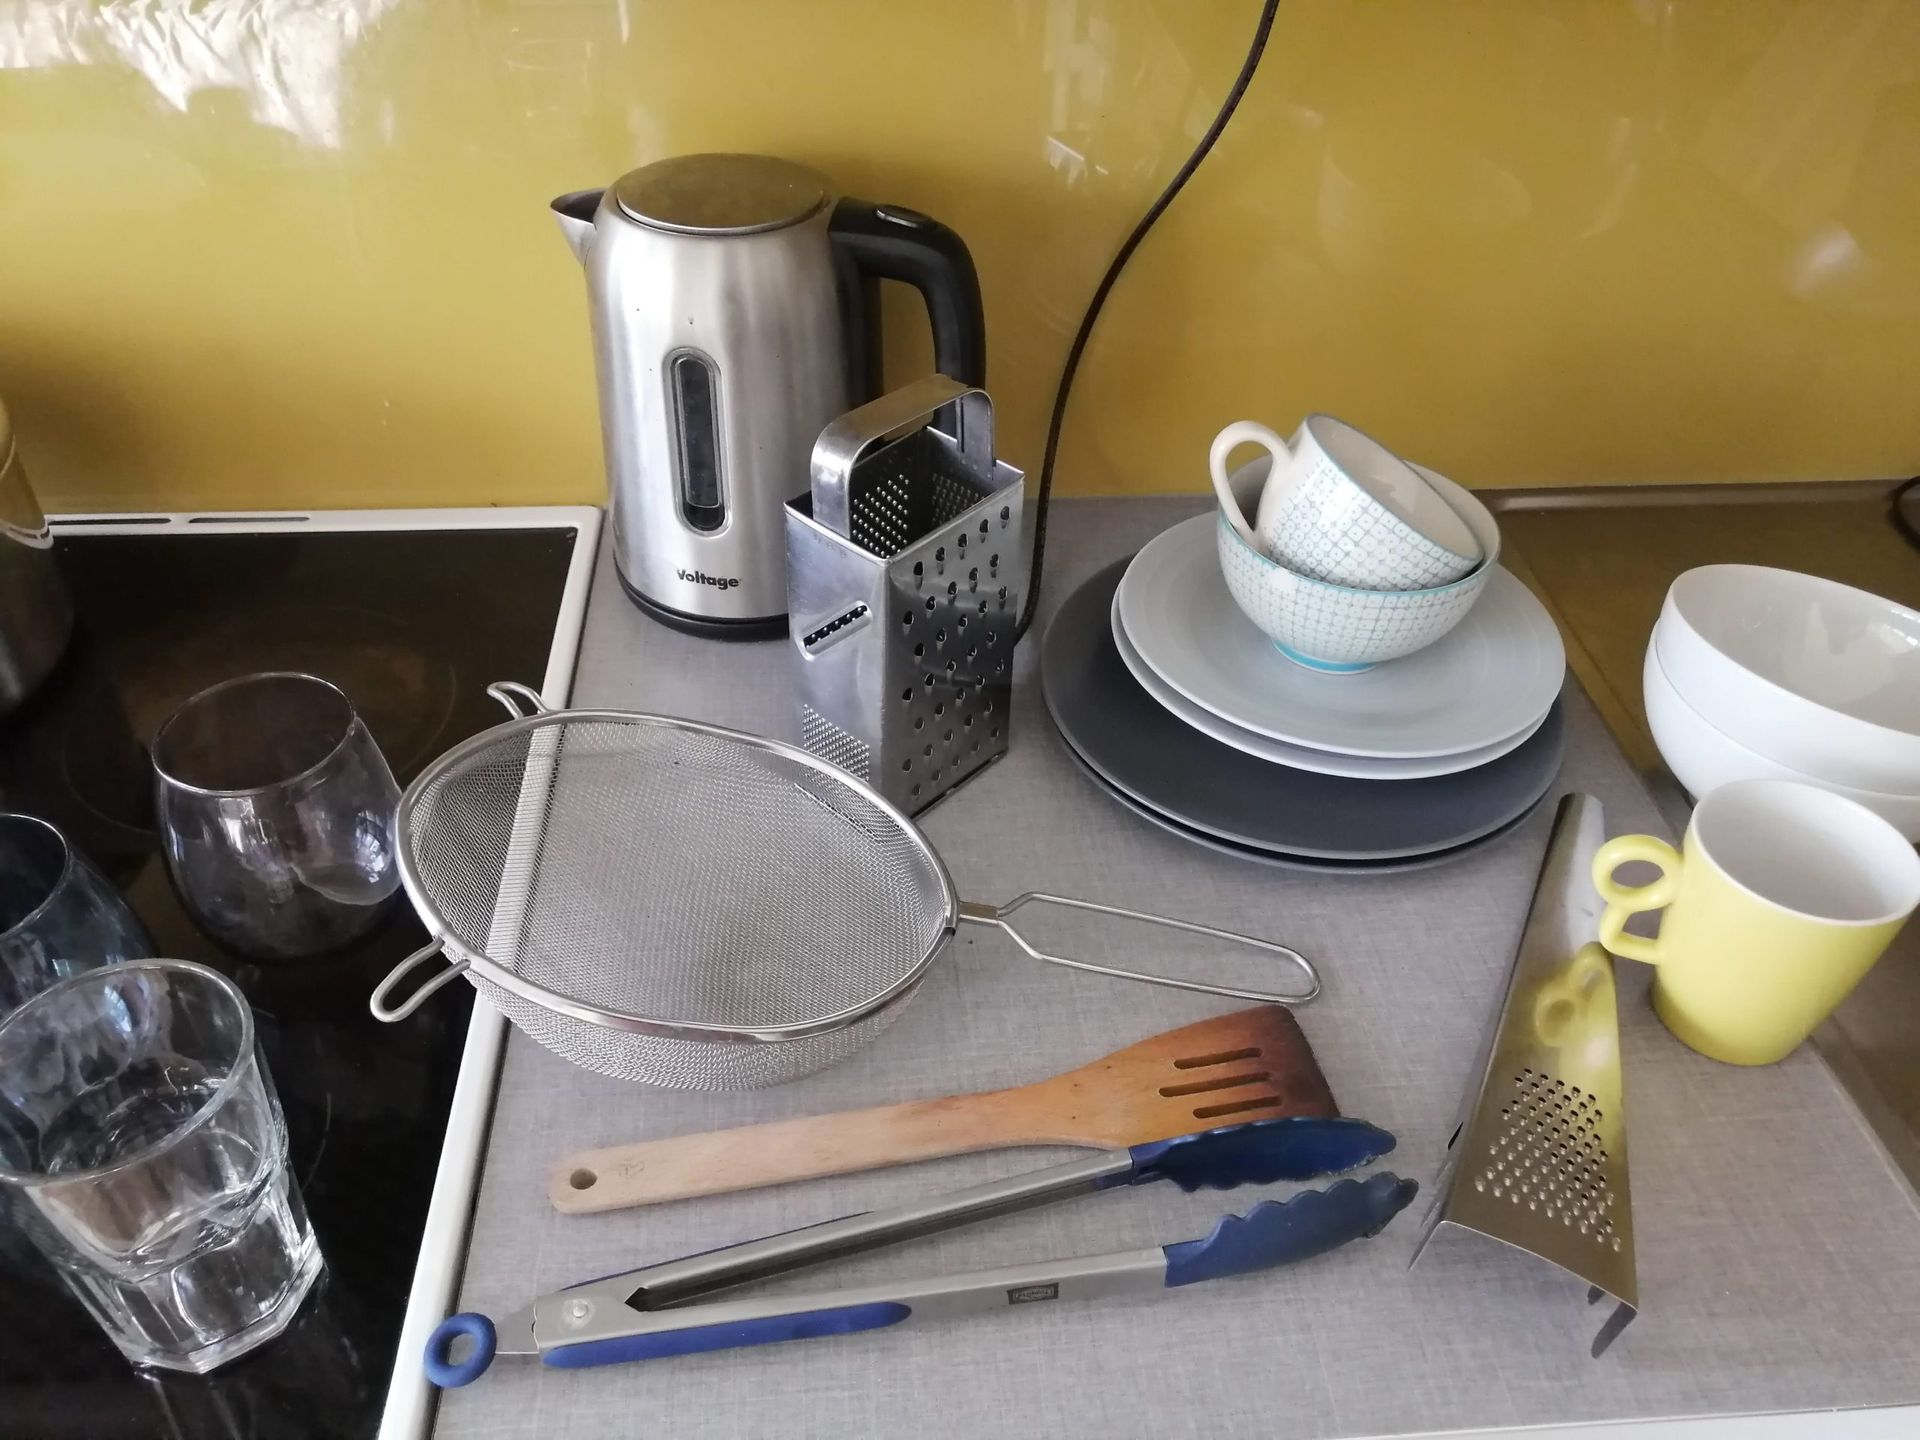 Kitchen utensils and crockery